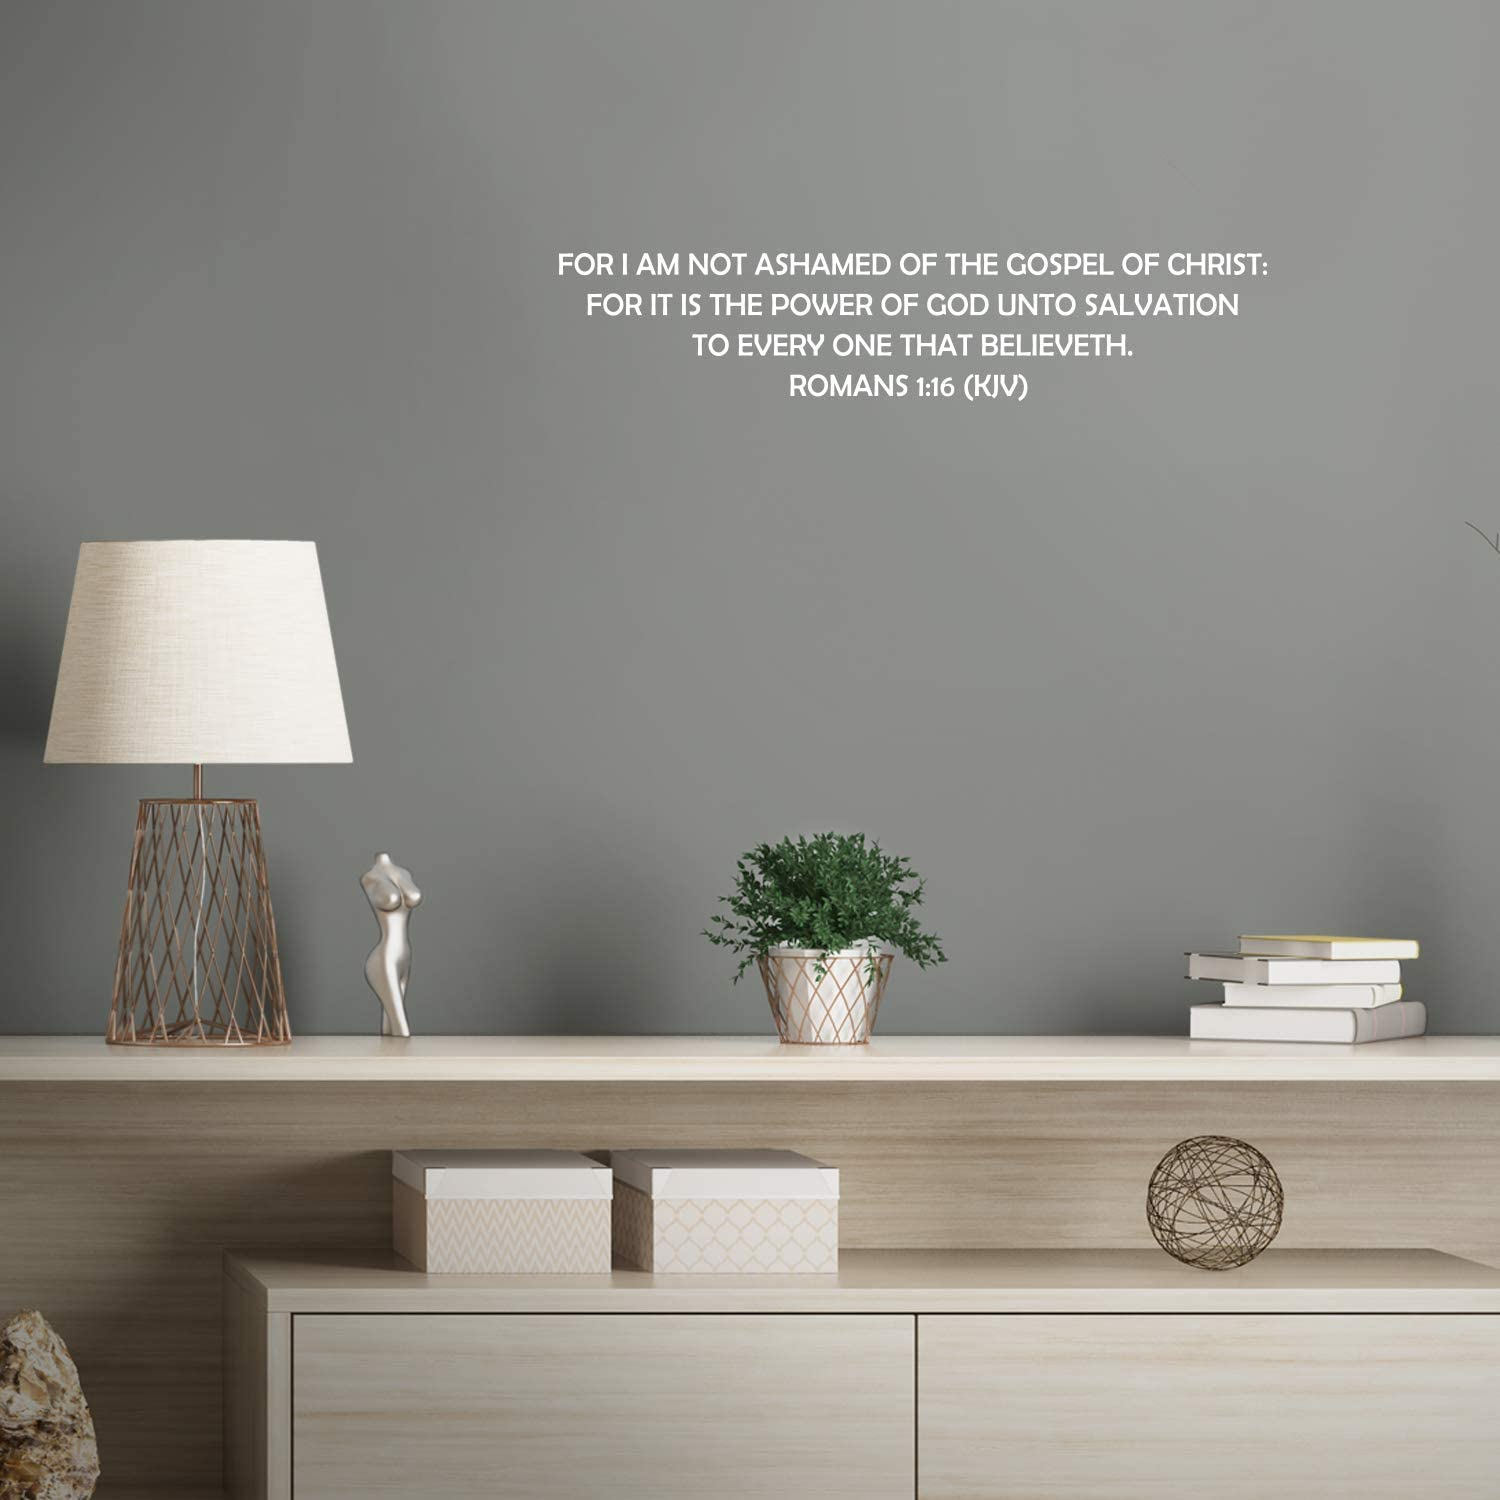 Vinyl Wall Art Decal - Romans 1:16 for I Am Not Ashamed of The Gospel of Christ - 5